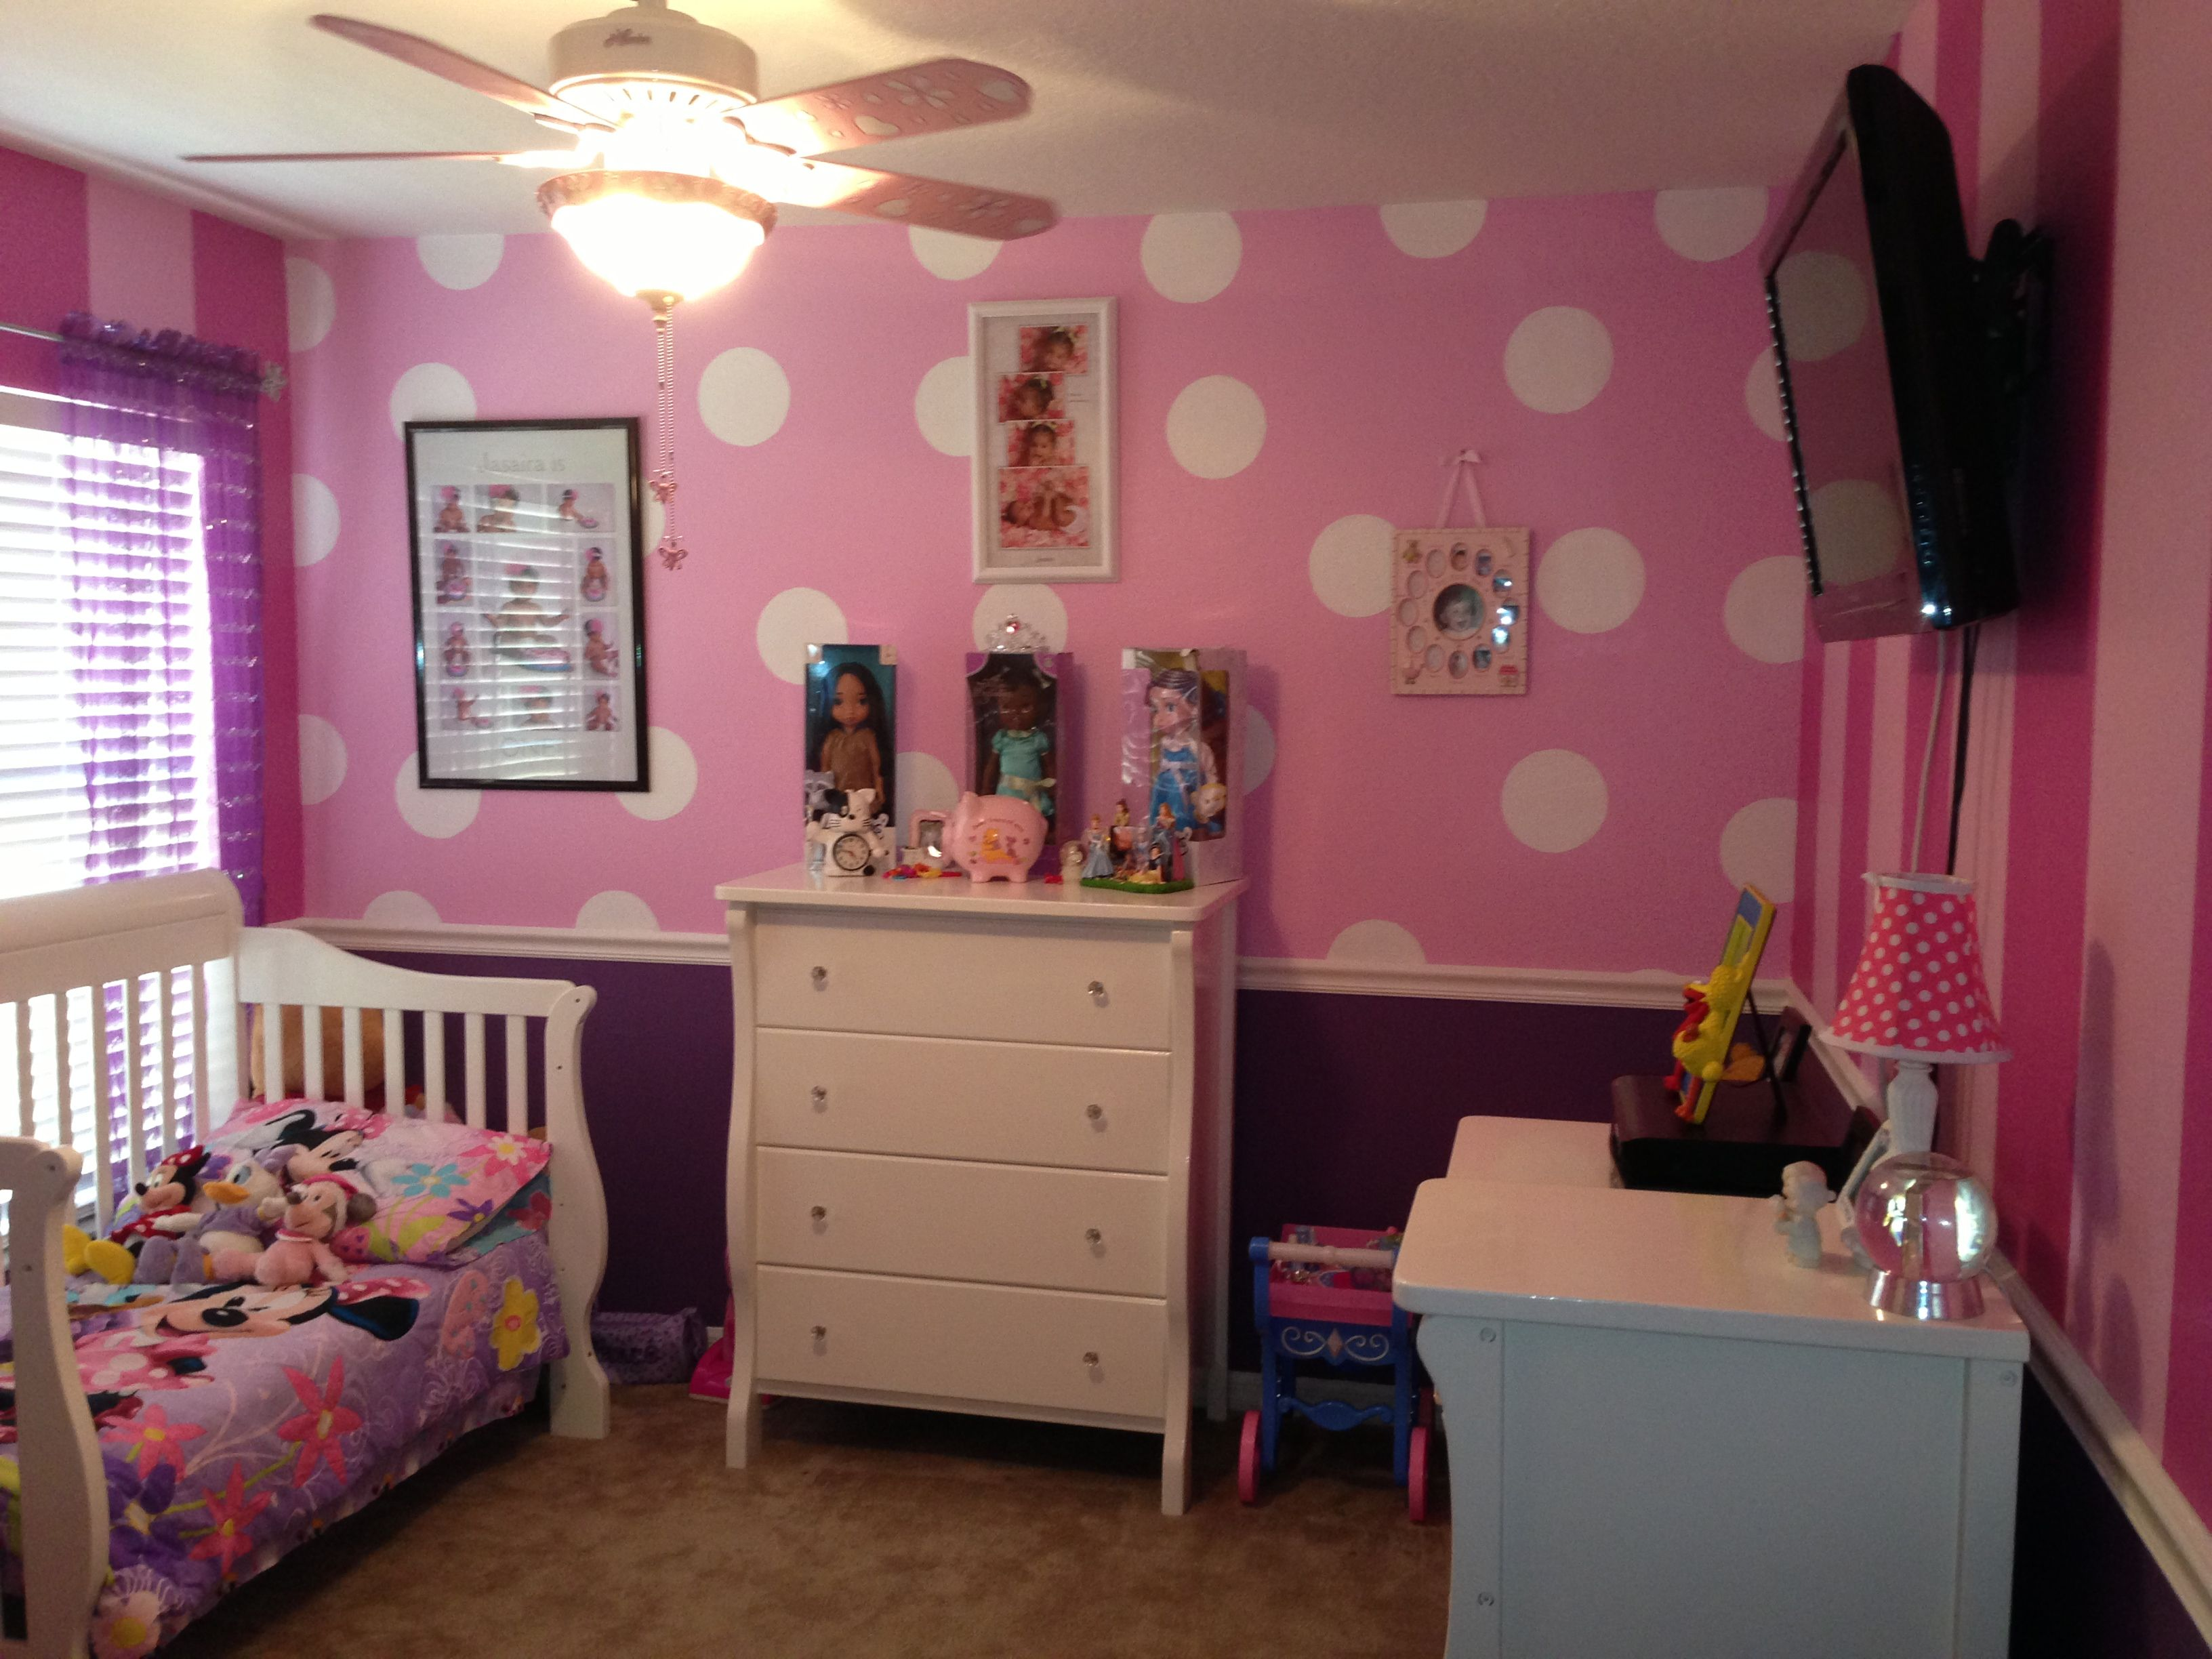 How Do It On Minnie Mouse Bedroom Minnie Mouse Room Decor Girl